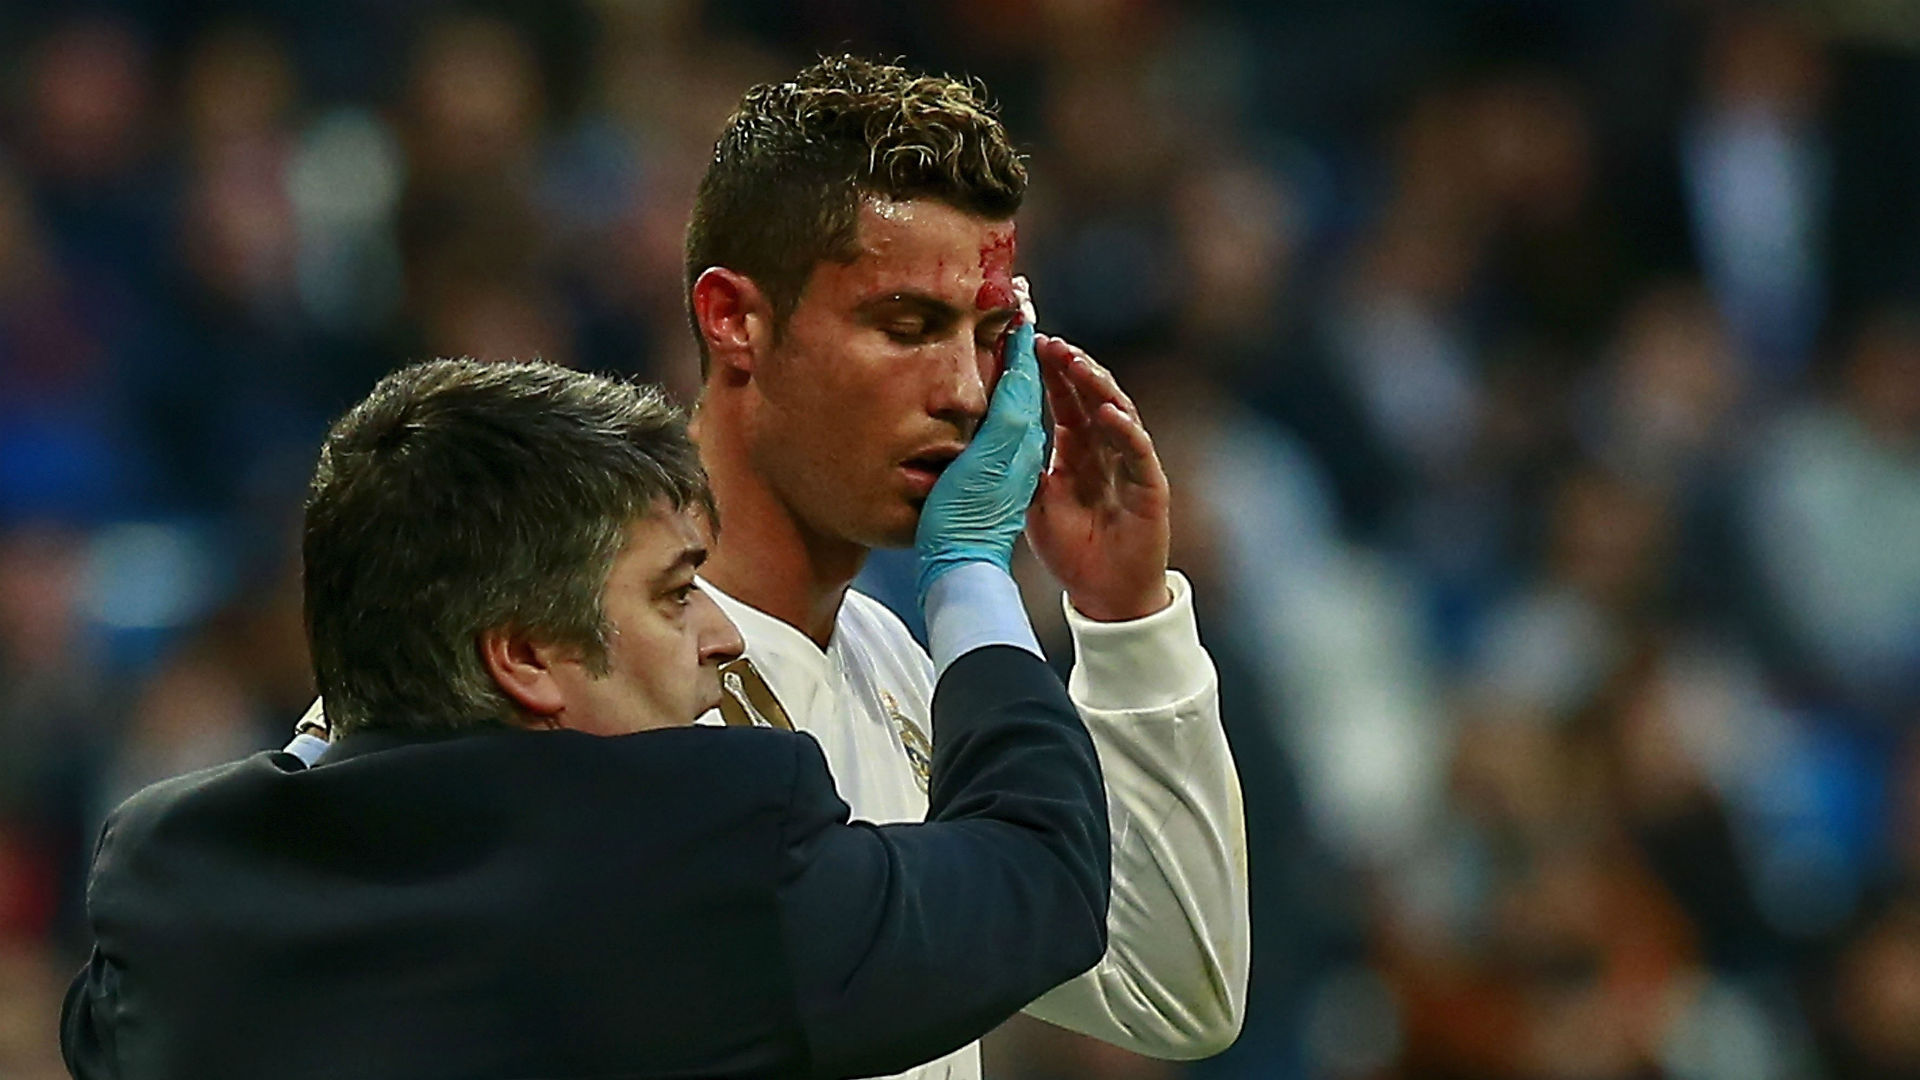 Cristiano Ronaldo Big Black Eye After Bloody Collision